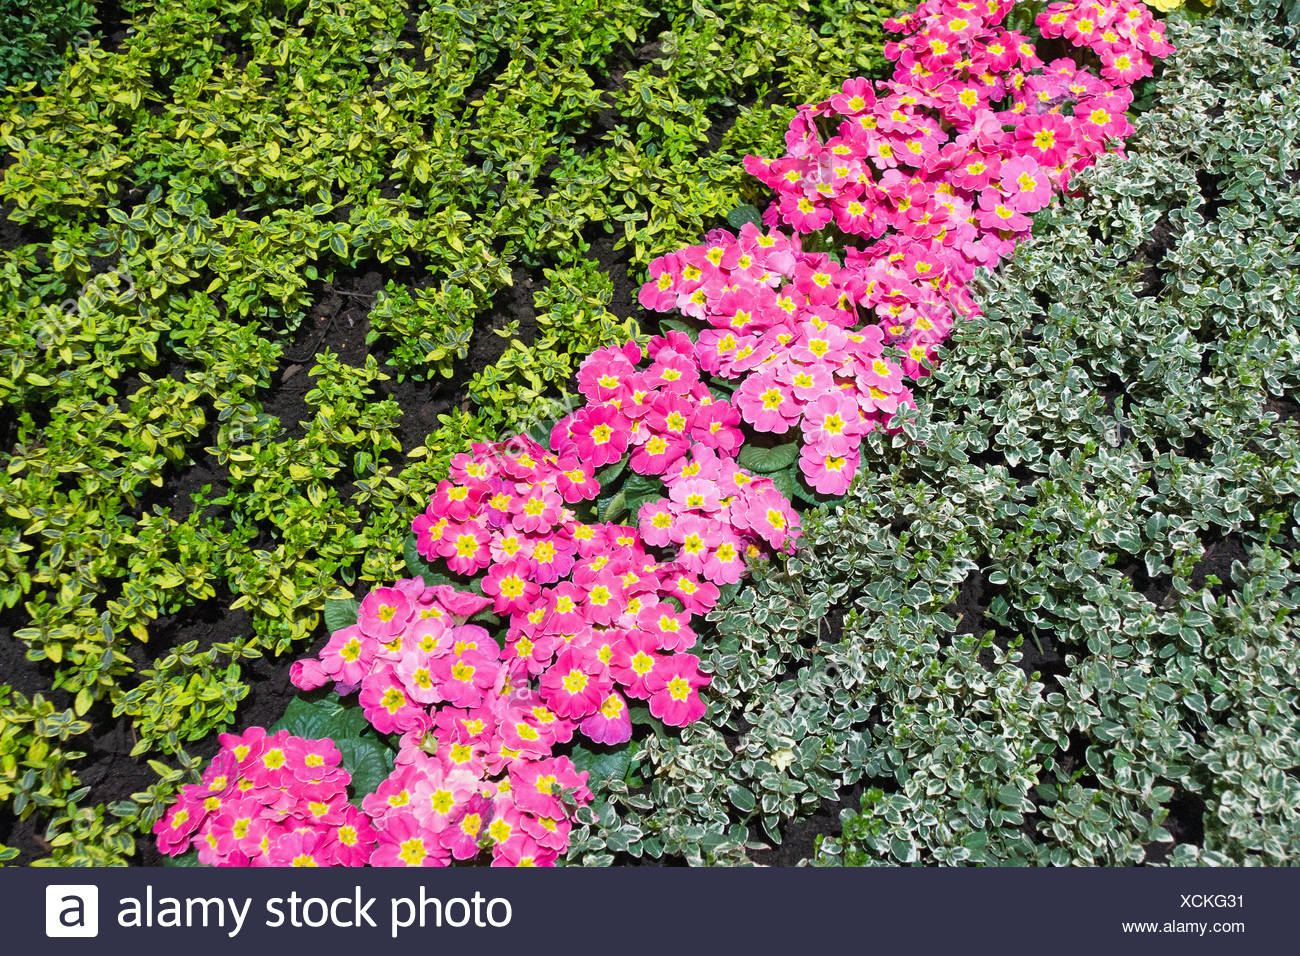 Beautiful flowerbed - Stock Image